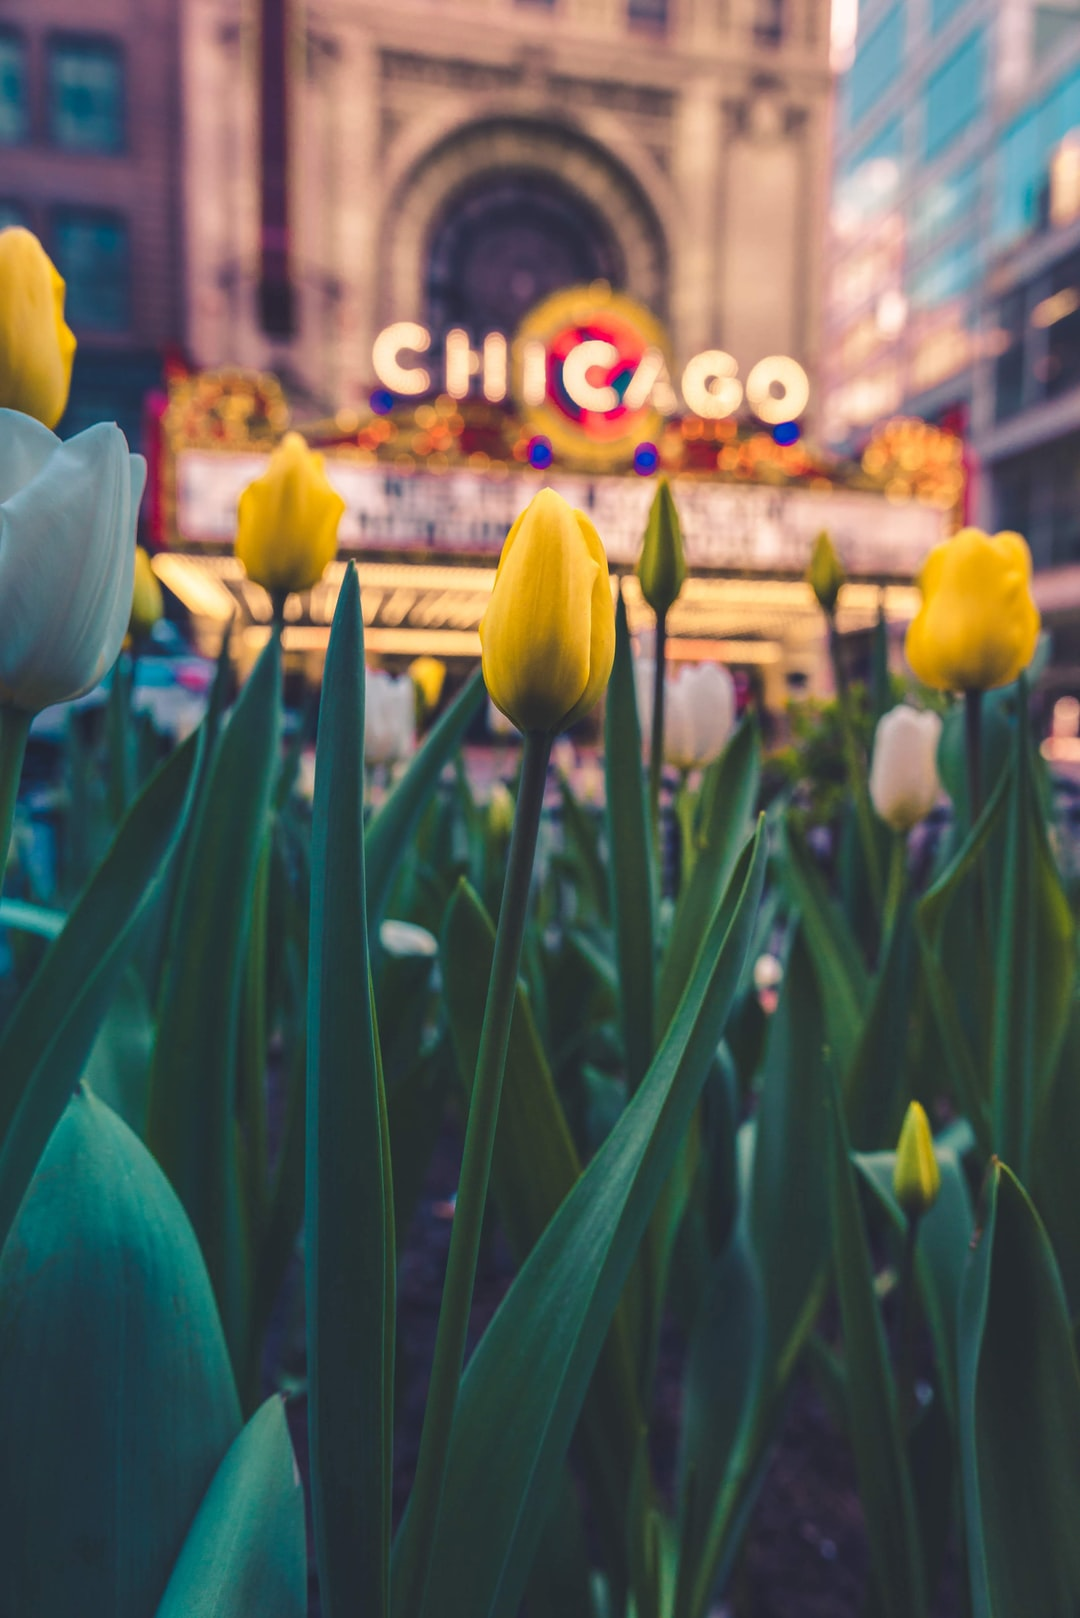 I was out shooting in Chicago when I passed the Chicago Theatre. I've shot here so many times I wasn't even going to stop to shoot it but then I noticed the Tulips which are only here for a little bit every year. I crouched down and saw this awesome perspective and decided to capture it.